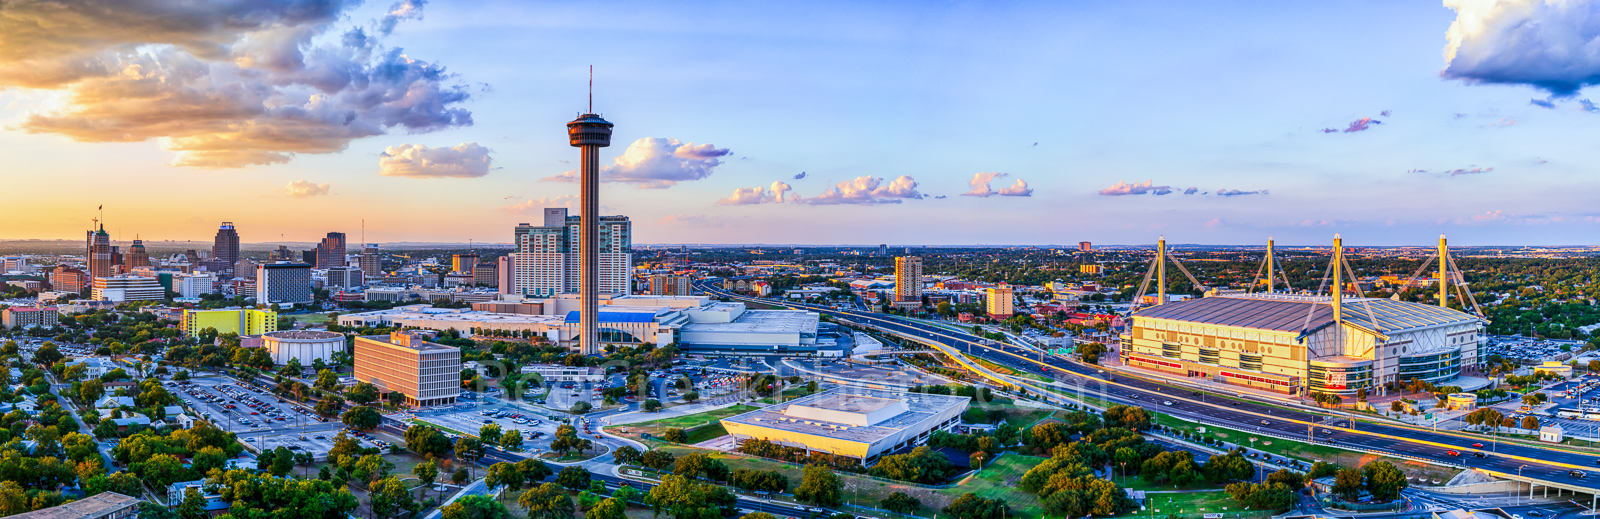 San Antonio, skyline, cityscape, dusk, aerial, Tower of America, Tower Life, building, Drury, Grand Hyatt, Frost Bank, Henry B Gonzales, convention center, historic site, city, landmark, pano, panoram, photo